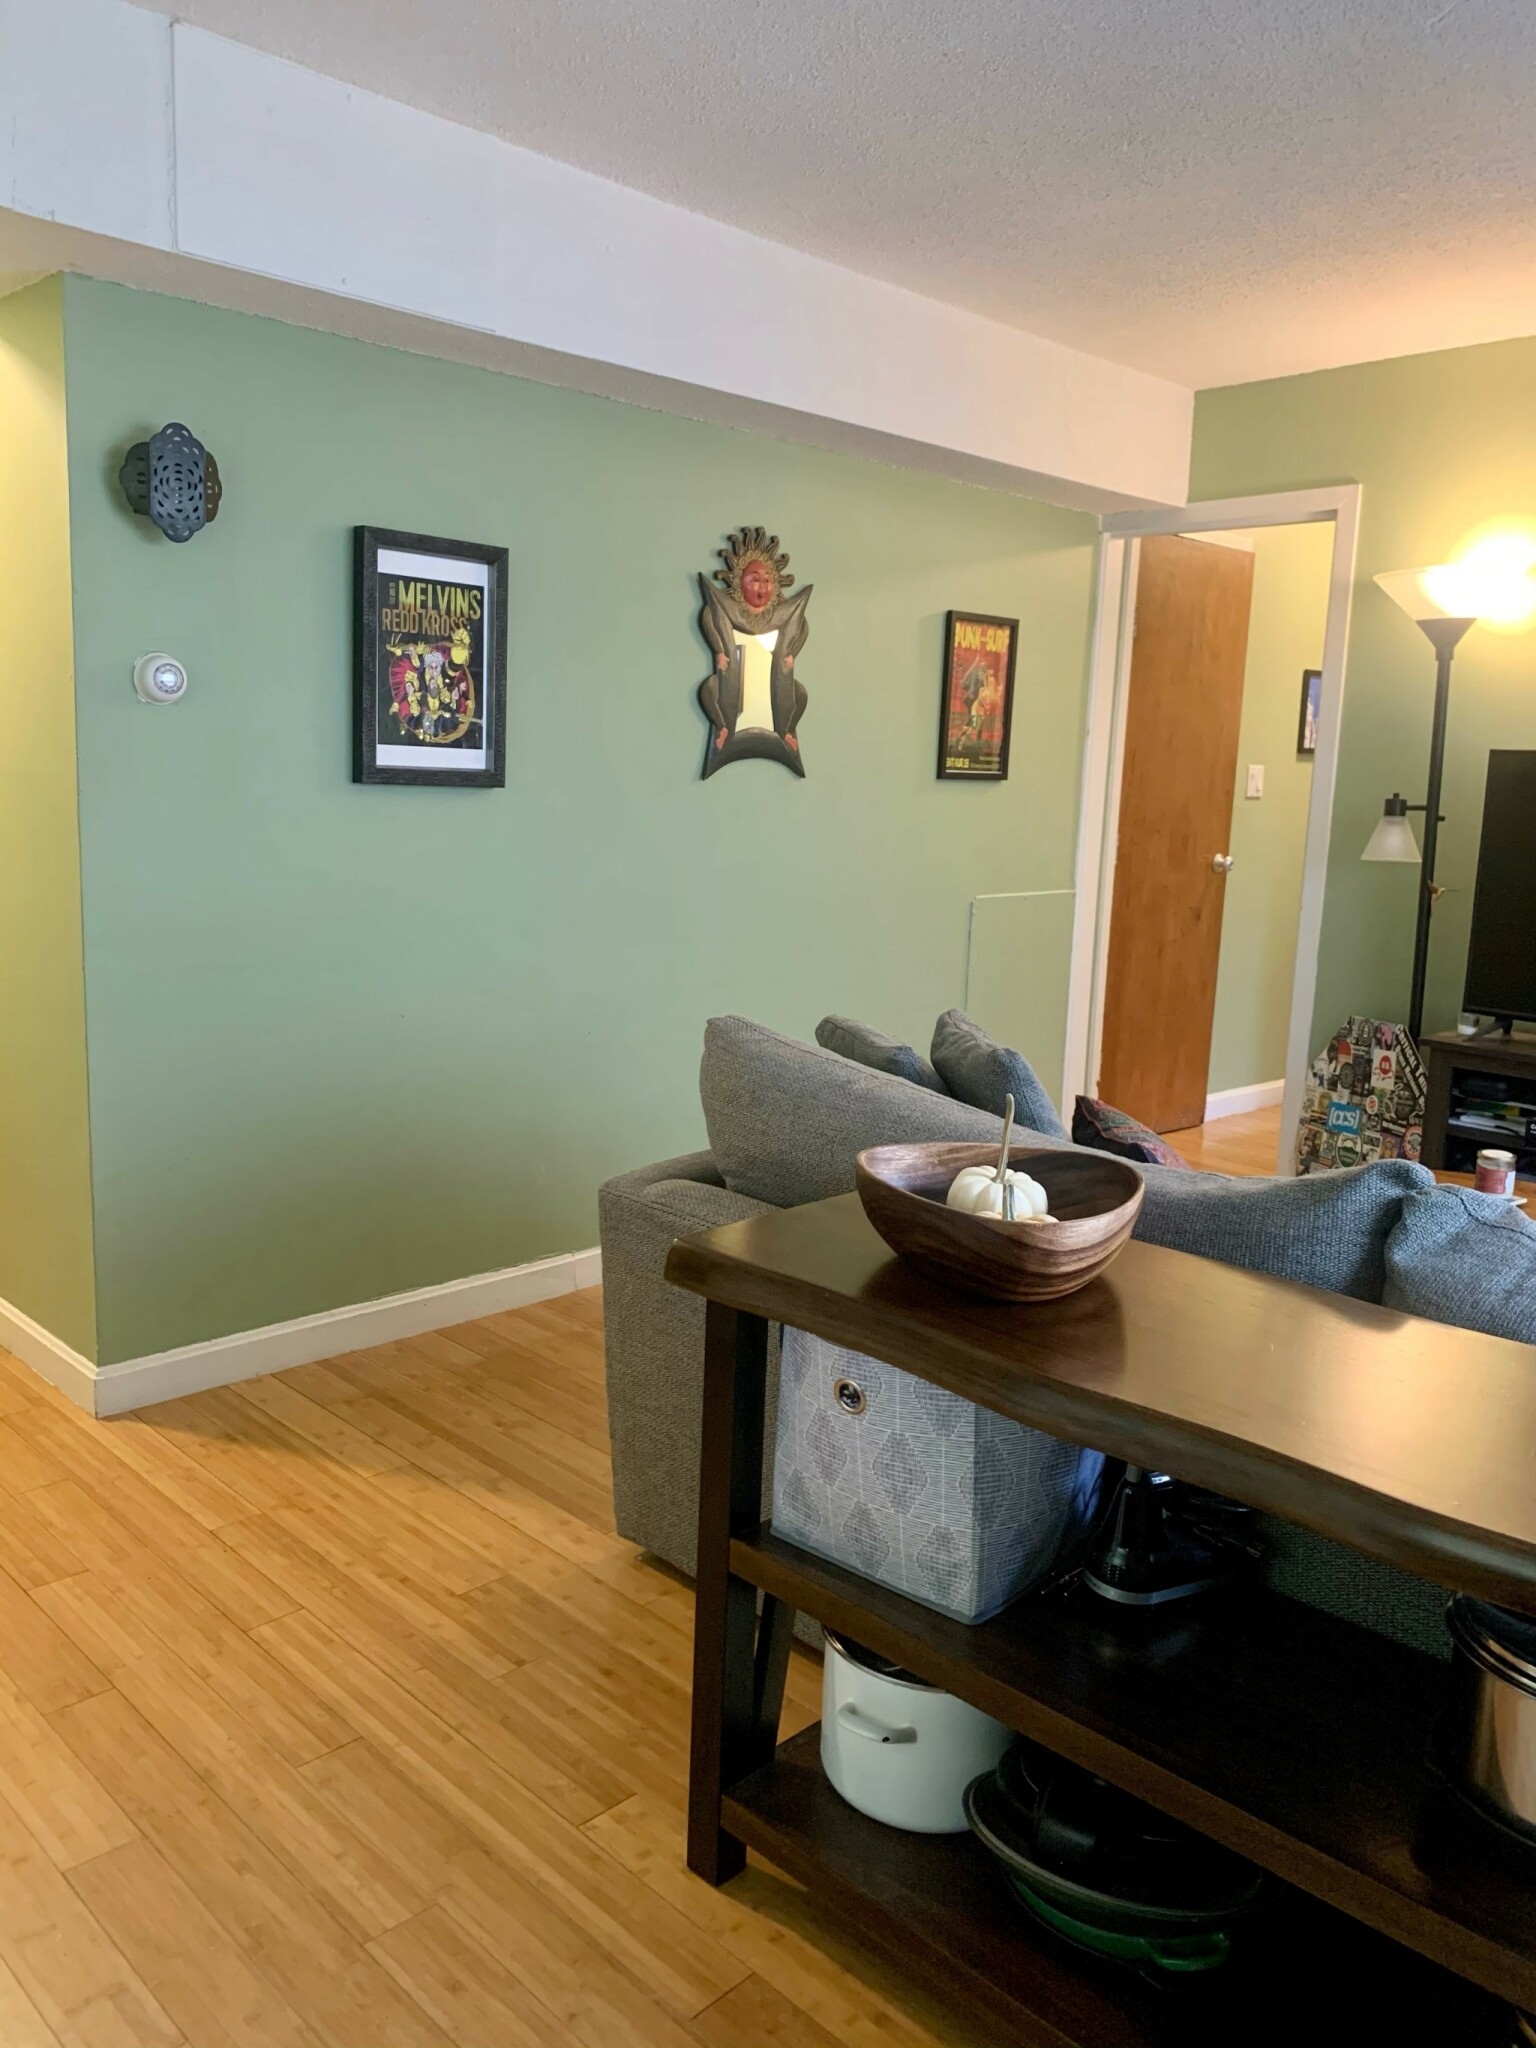 Pictures of  property for rent on Trowbridge, Cambridge, MA 02138